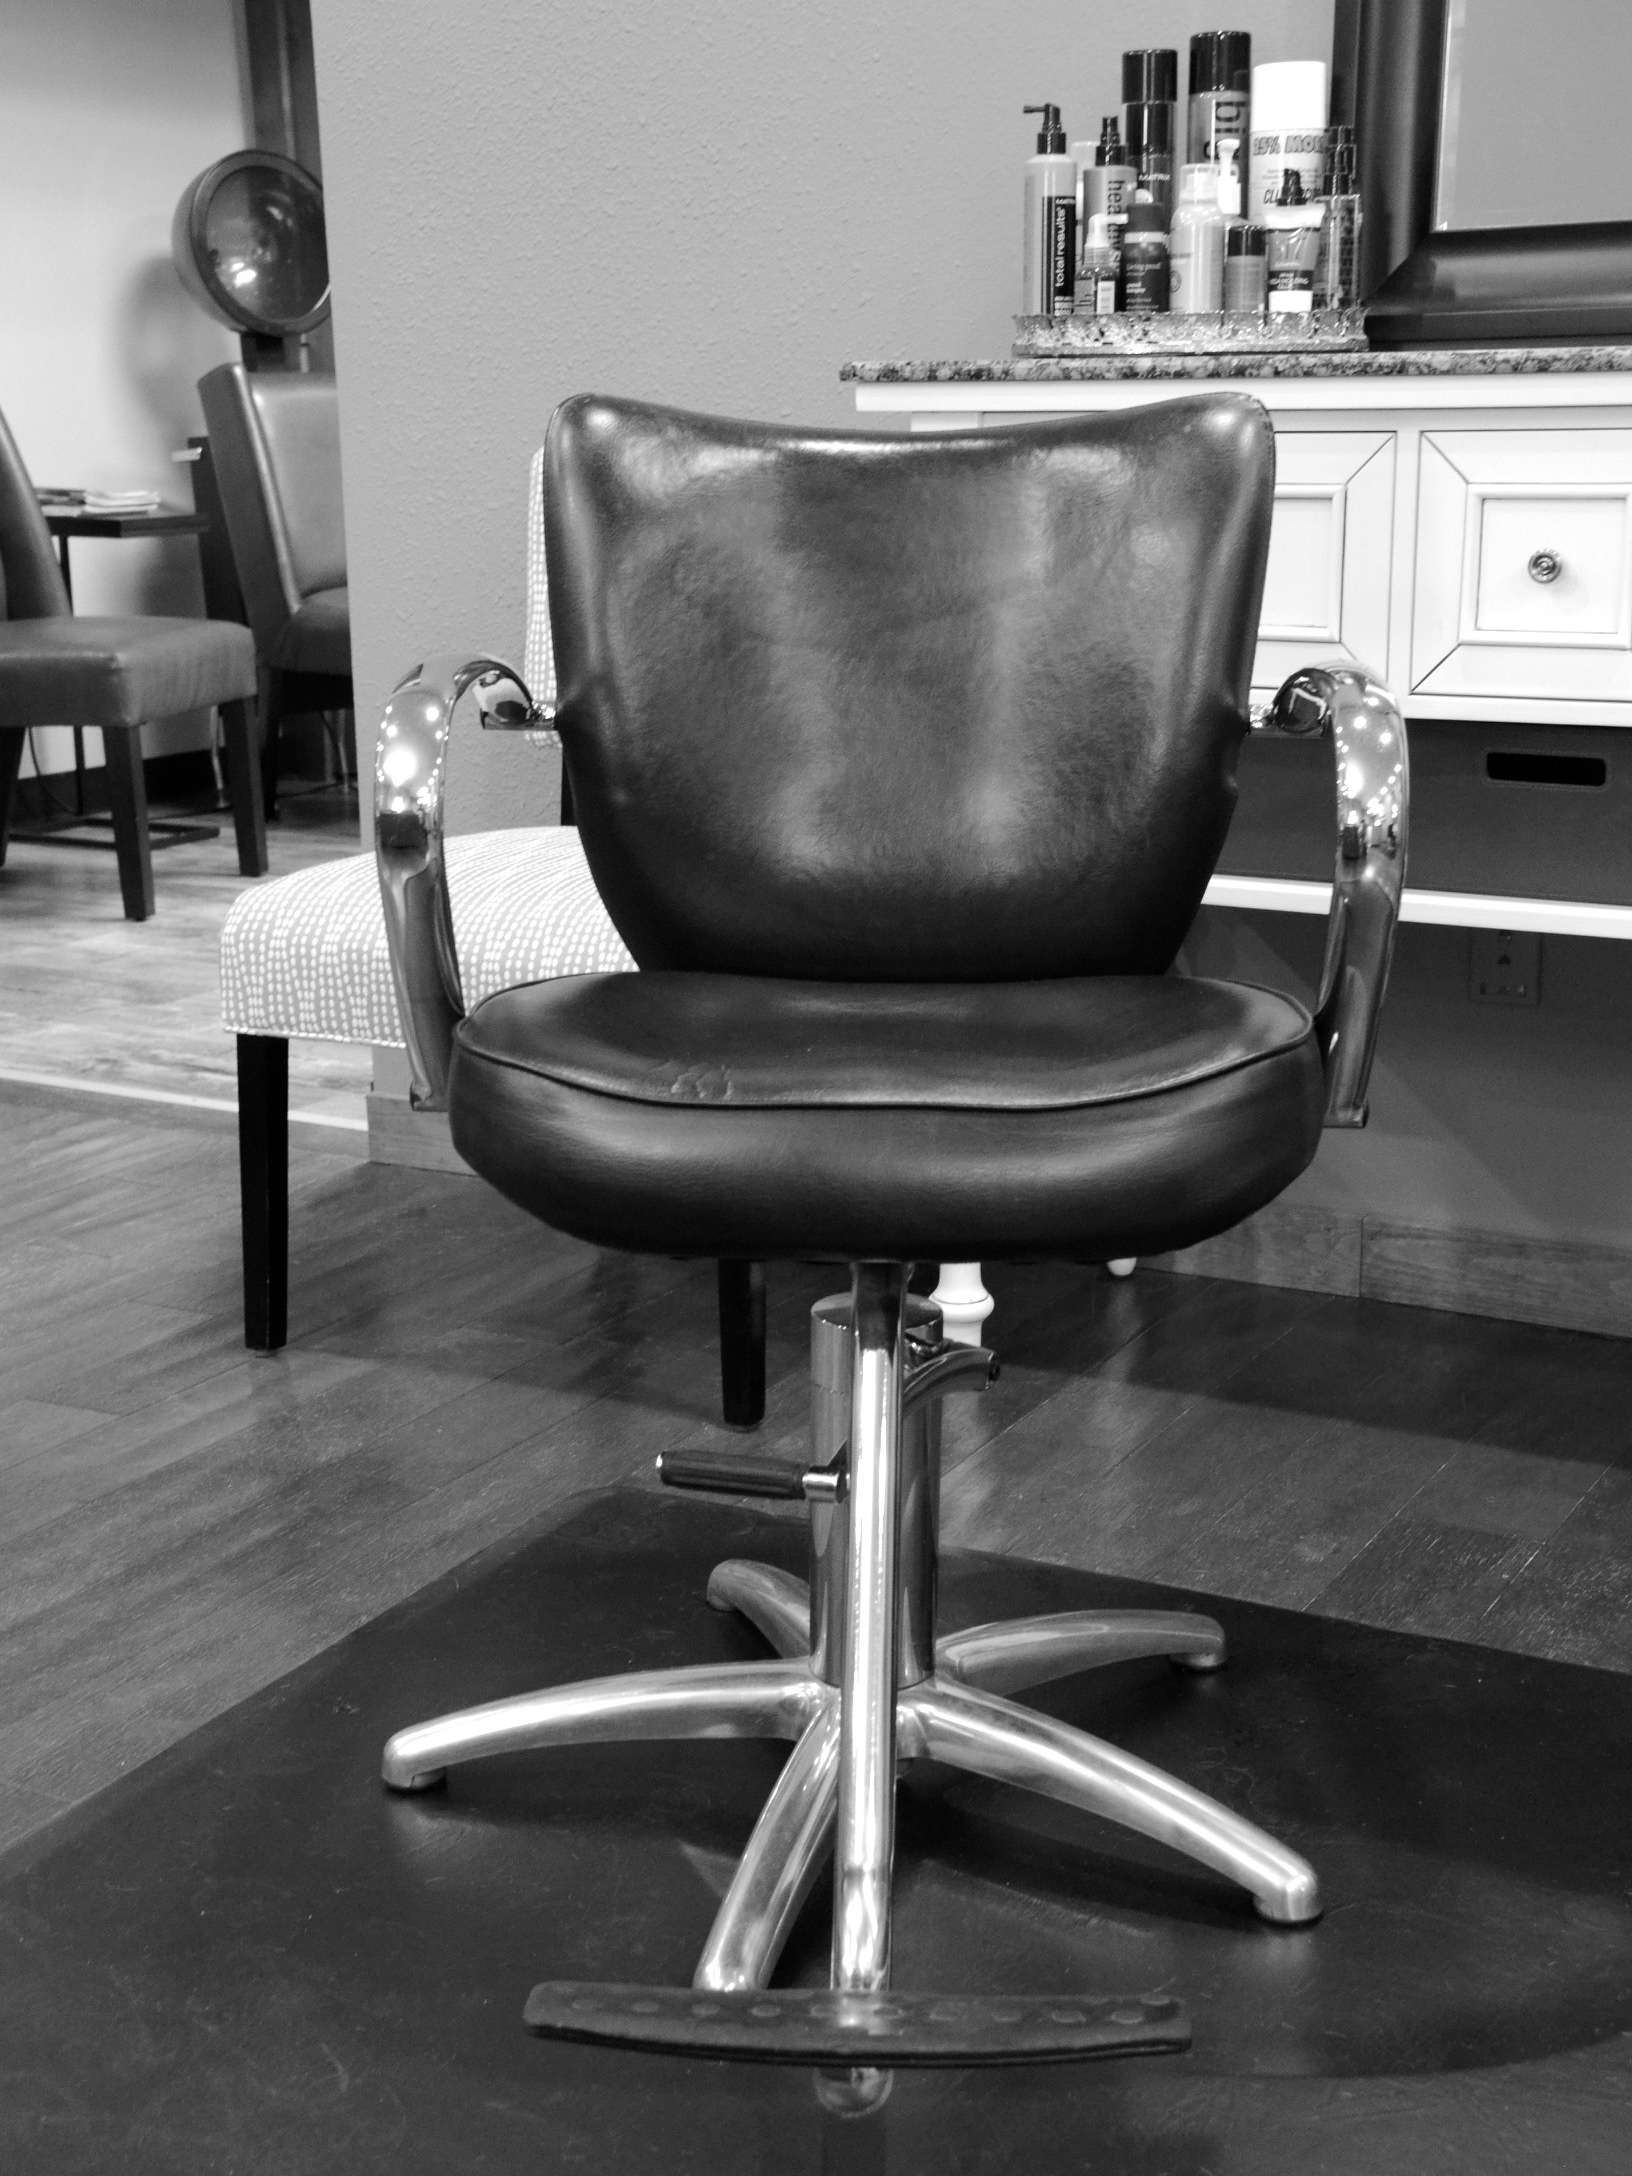 Chair Rental Available! - At Envy Hair Boutique, you'll find a team of exceptionally skilled craft hairdressers who bring their own unique perspective to the art of hair styling. Want to become part of our fun & ingenious team? Consider renting a chair with us!Our stylists are independent - meaning they are their own bosses. You would have complete freedom to express your own creativity and design your own schedule of appointments. Now, that is freedom that makes being a hair stylist a pure joy. Please email today to get detailed information on our monthly chair rental rates.And, for a limited time we want to extend a special bonus to all our new renters! We look forward to telling you all about it.